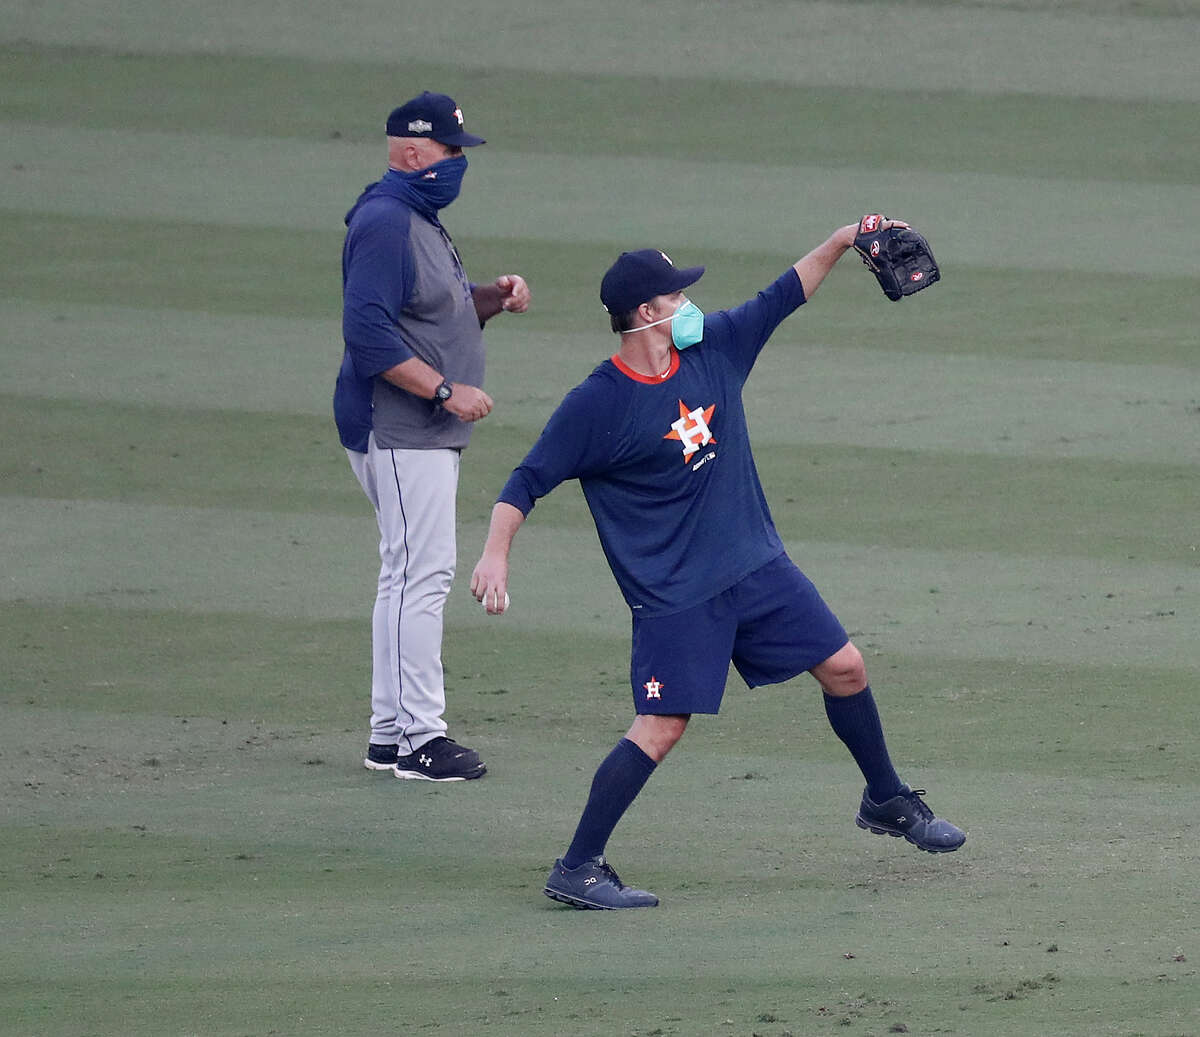 Houston Astros pitching coach Brent Strom works with pitcher Zack Greinke after Game 2 of the American League Division Series on Tuesday at Dodger Stadium in Los Angeles.